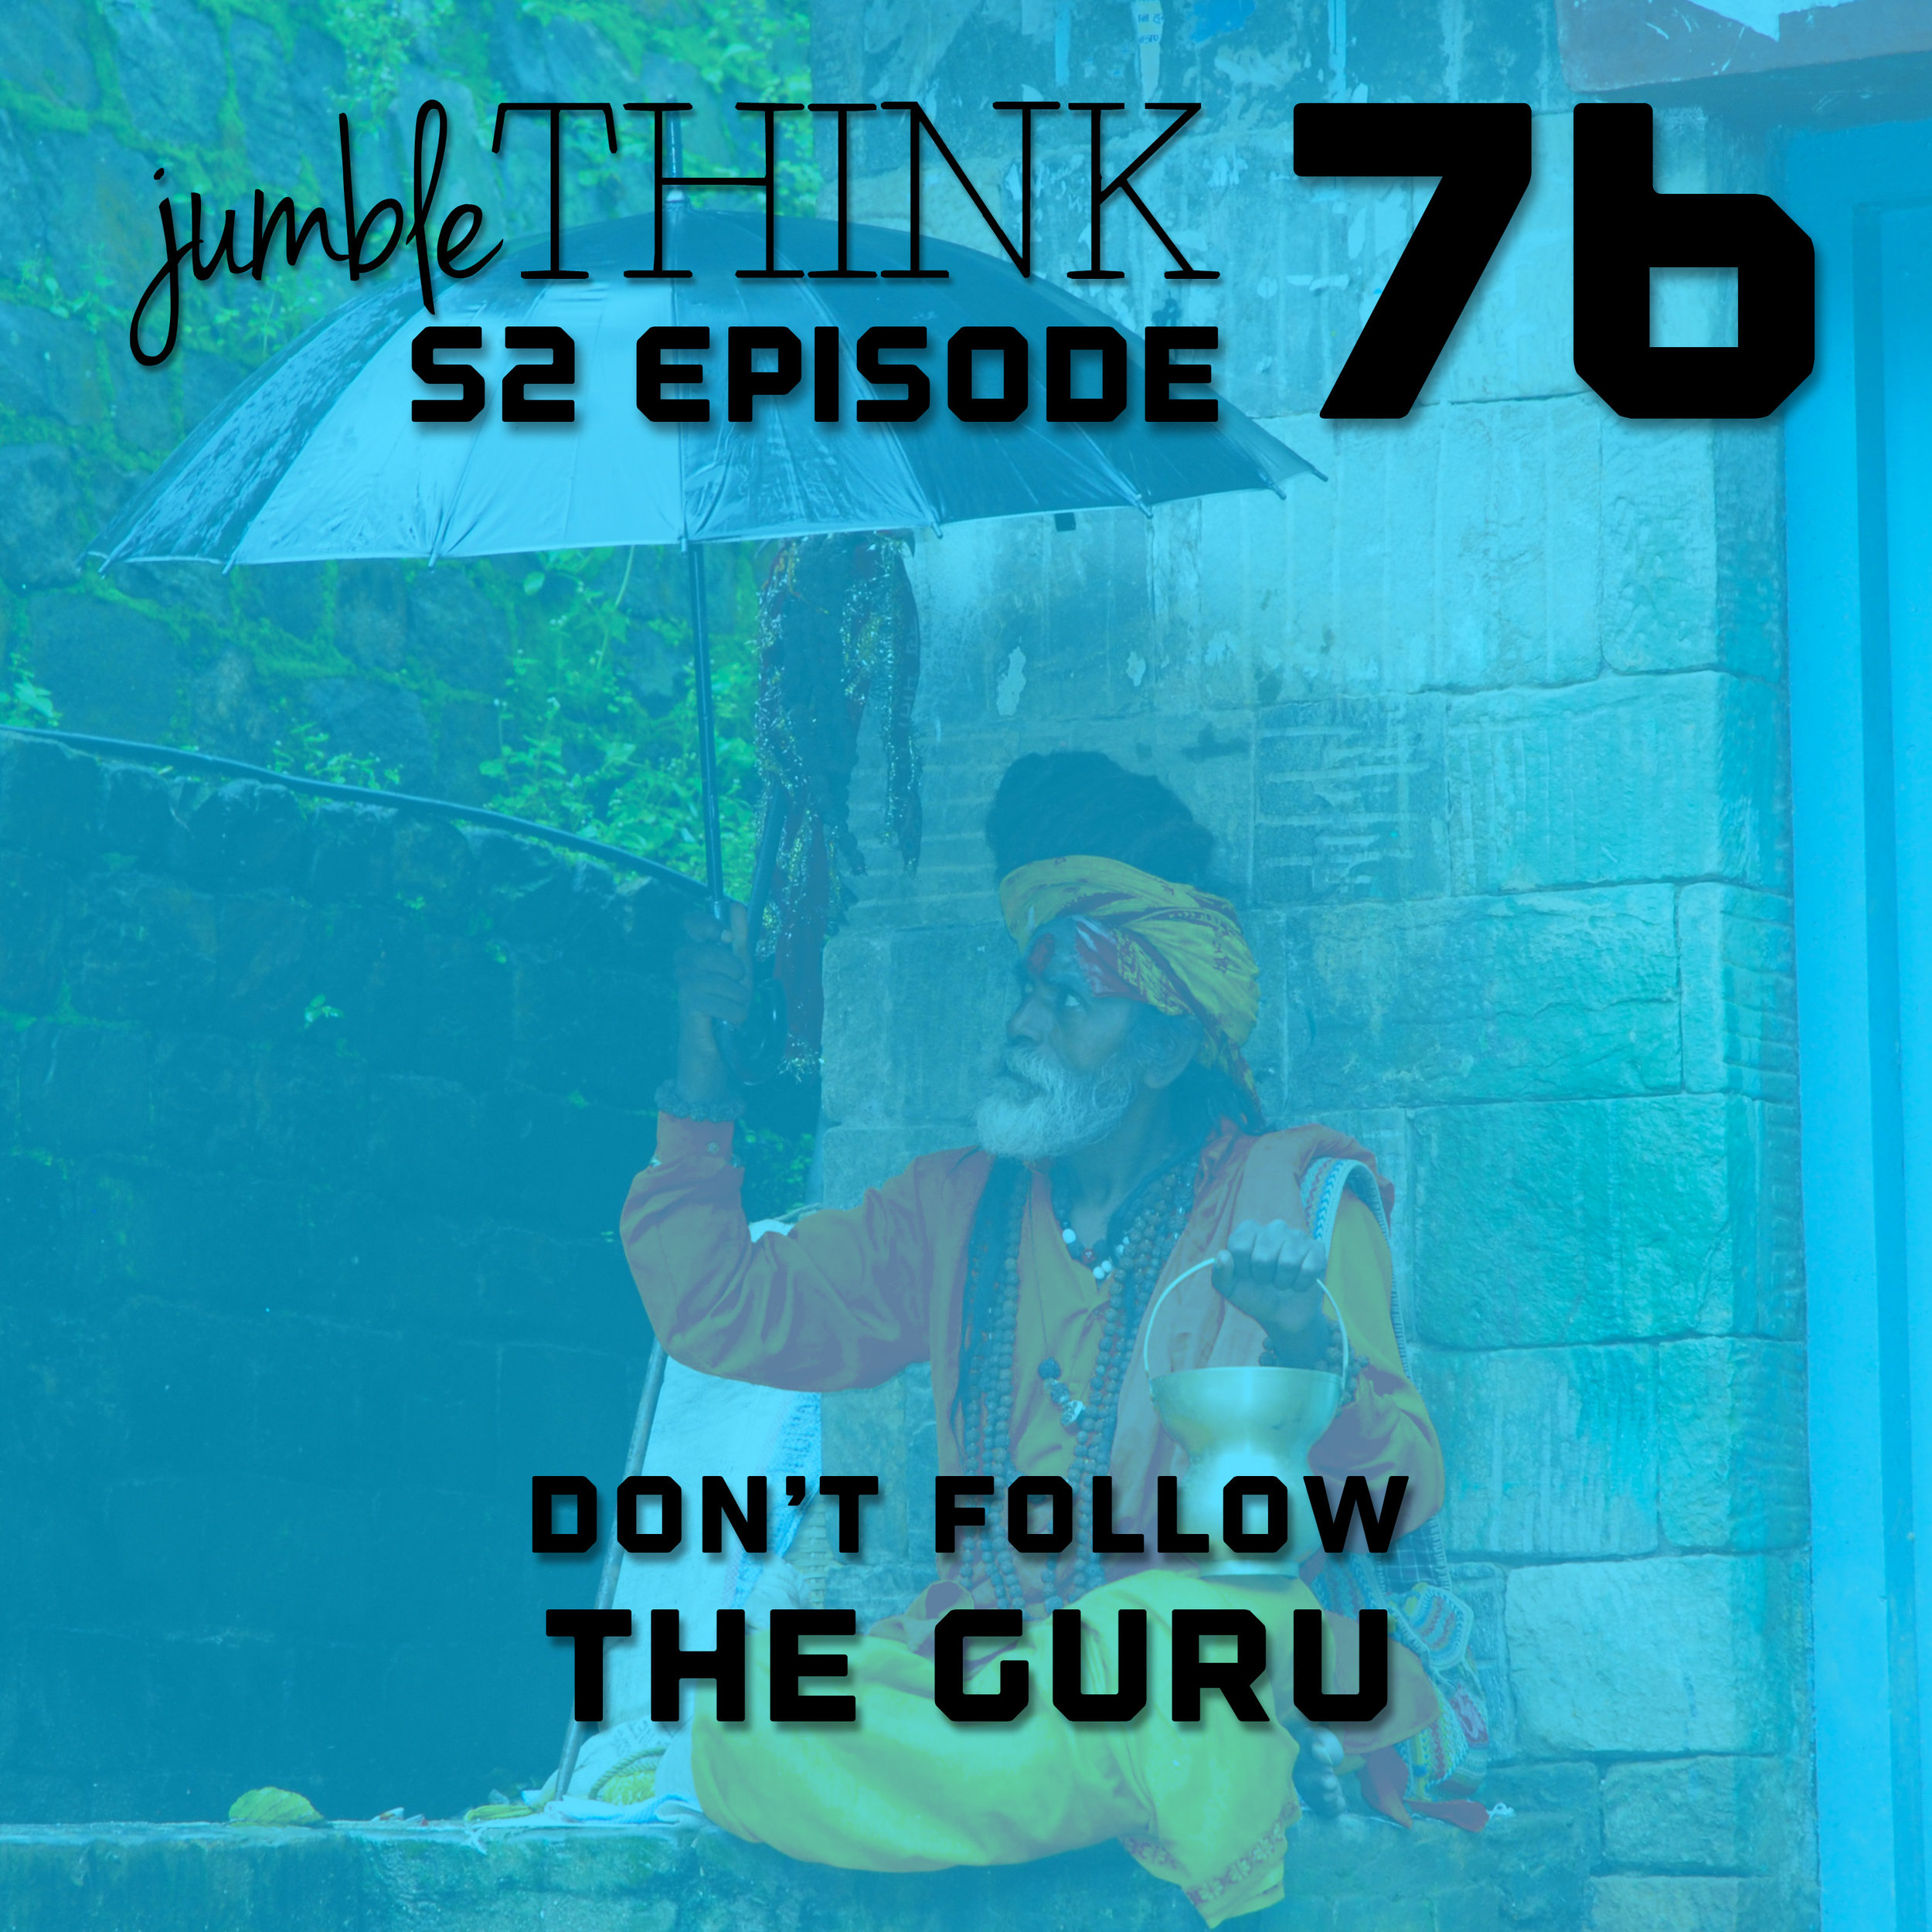 Don't follow the Guru